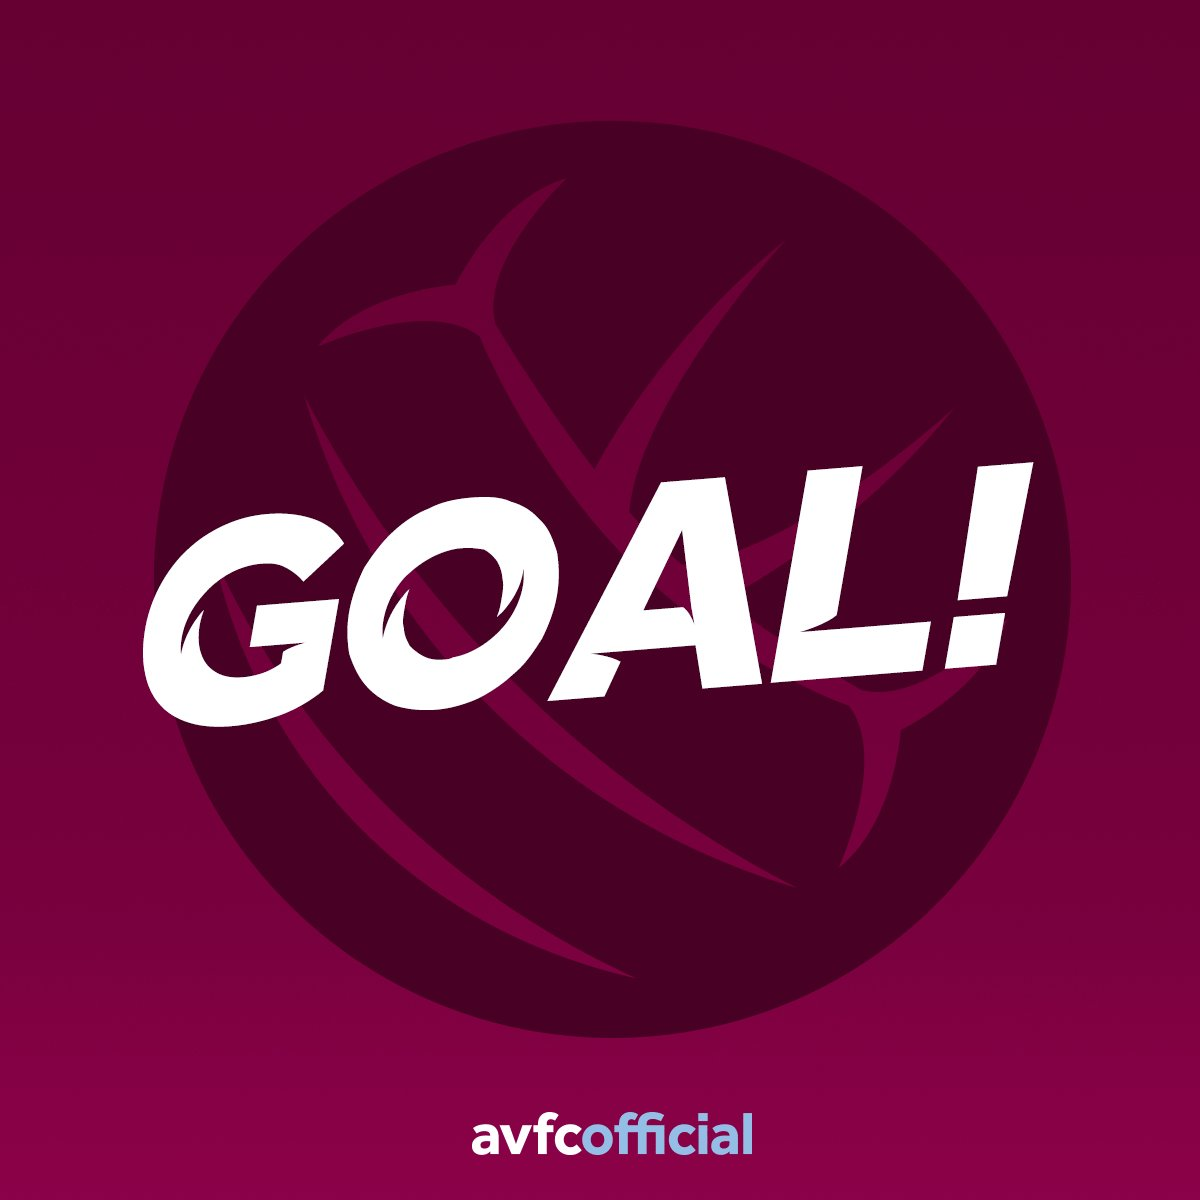 GOALLLLLLLL! De Laet does superbly to not only win the ball back on halfway but then set Kodjia away down the right channel, his initial shot is saved but Bywater is unable to hold on and Kodj taps home. 1-0! bit.ly/2uQYUfC #PartOfThePride #AVFC